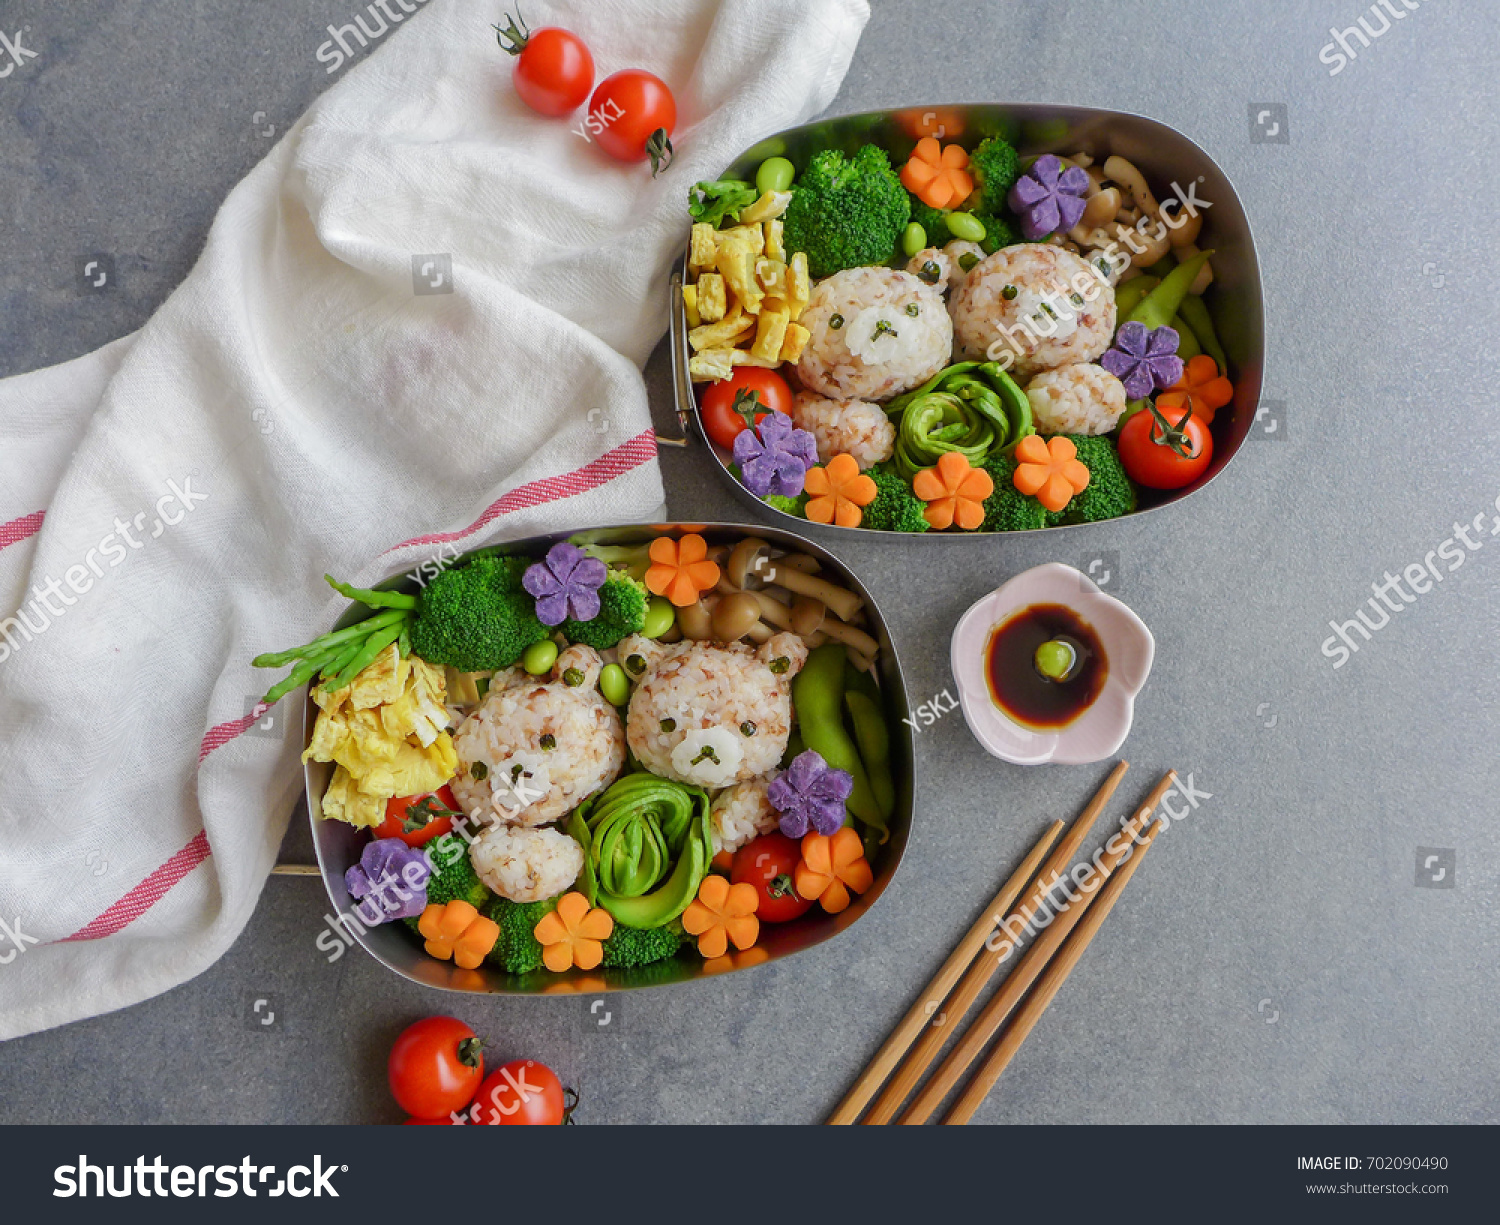 delicious homemade vegetarian meal animatedshaped food stock photo